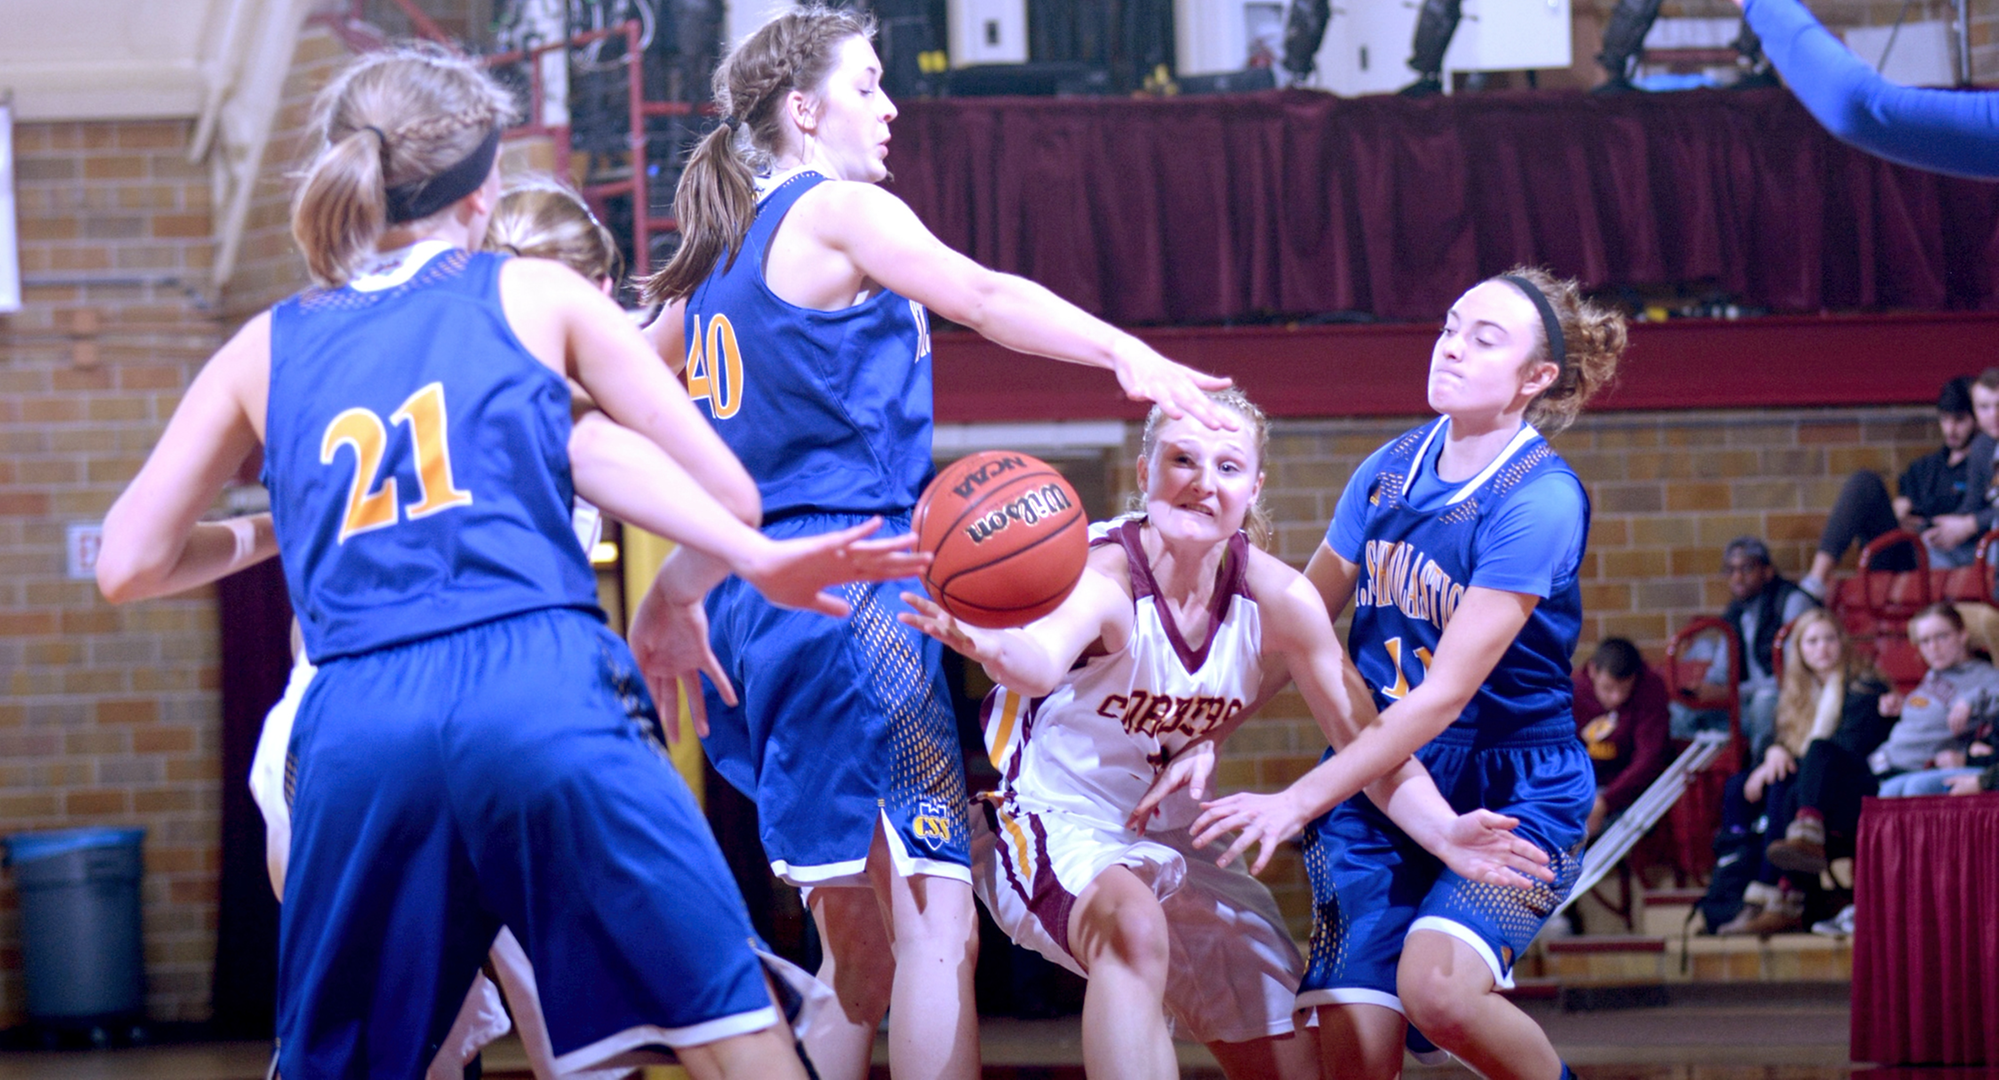 Senior Greta Walsh dishes the ball inside to one of the Cobber post players during the fourth quarter of Concordia's win against St. Scholastica.